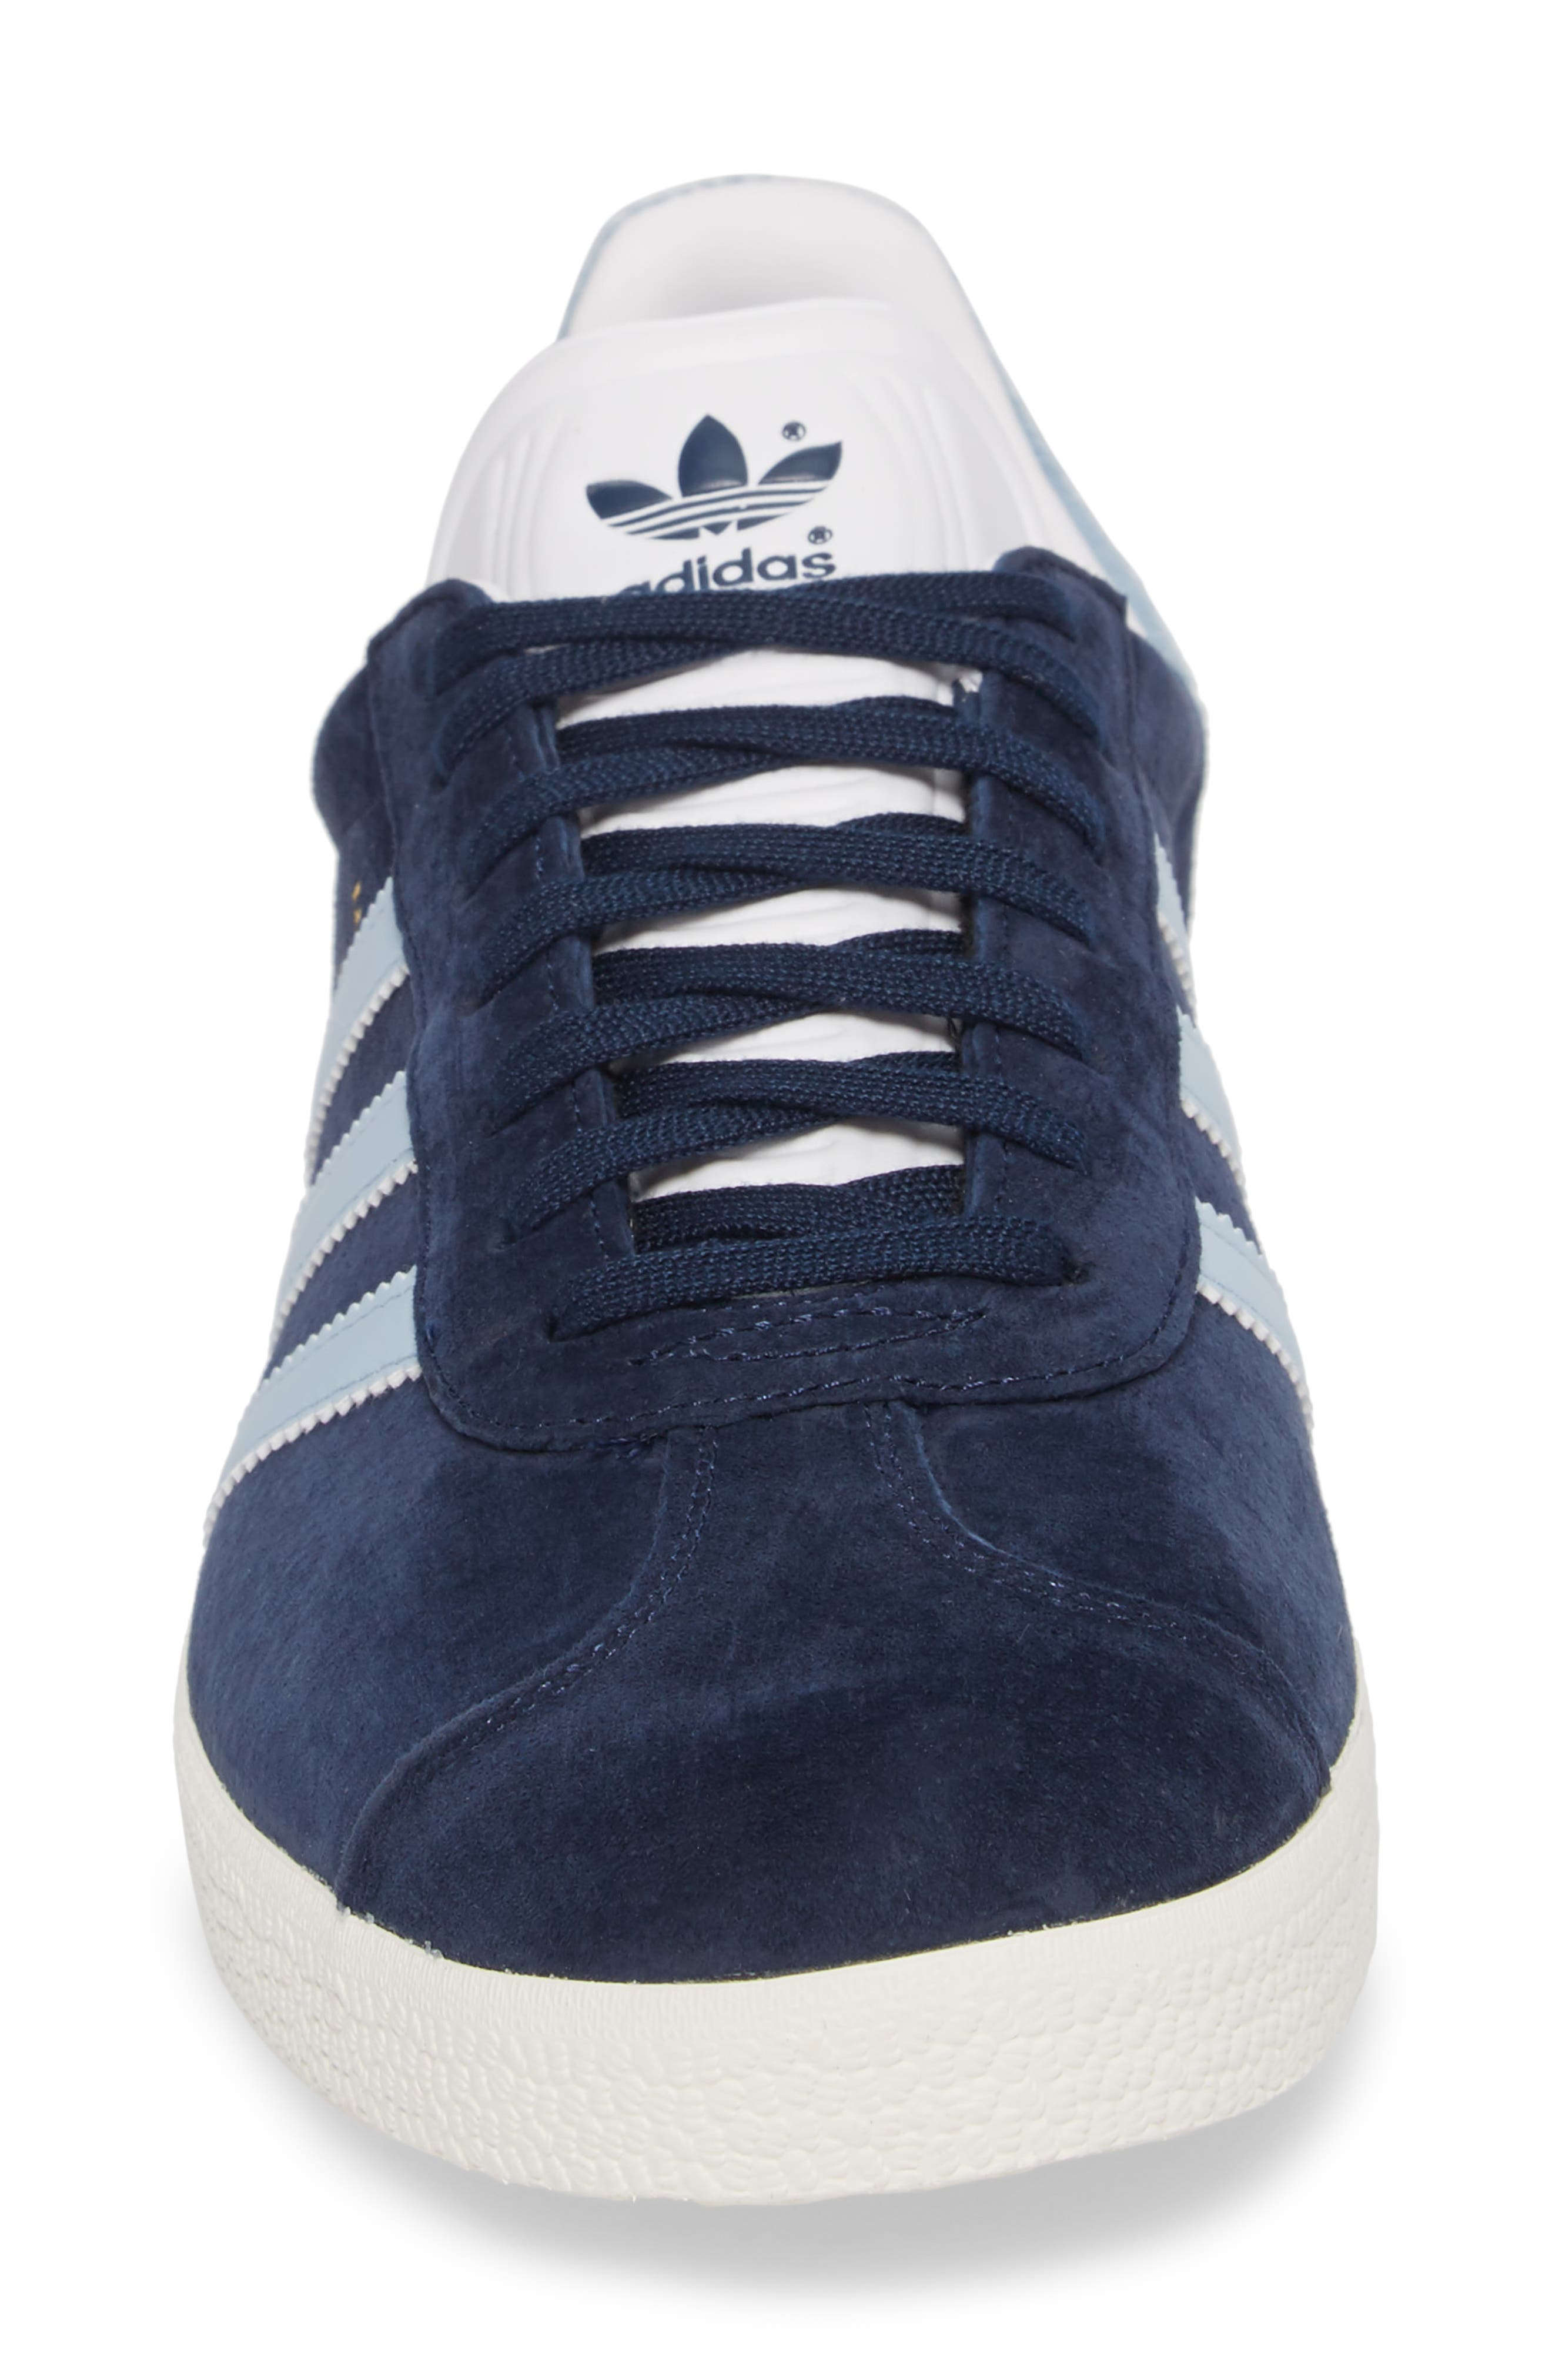 Gazelle Sneaker,                             Alternate thumbnail 4, color,                             Navy/ Easy Blue/ White